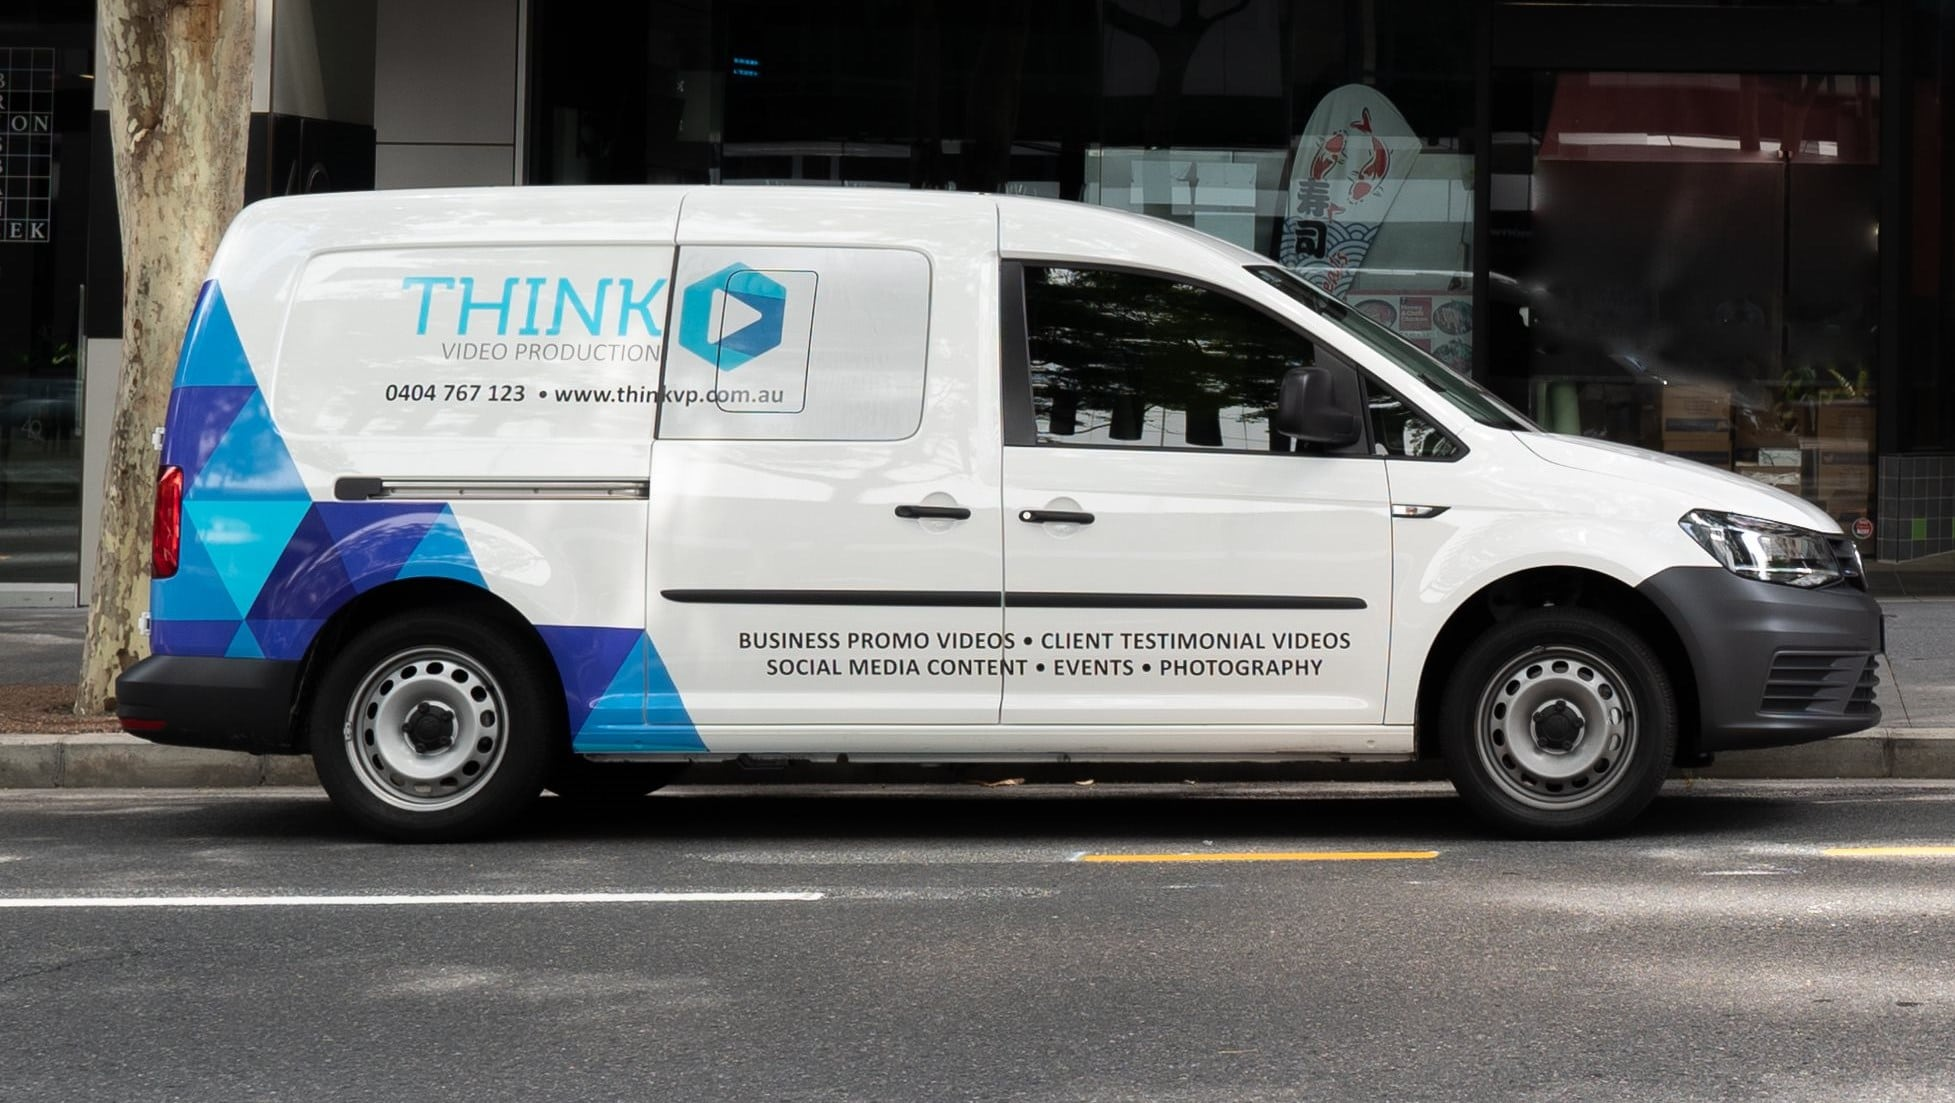 Think Video Production work van parked on street in Brisbane CBD